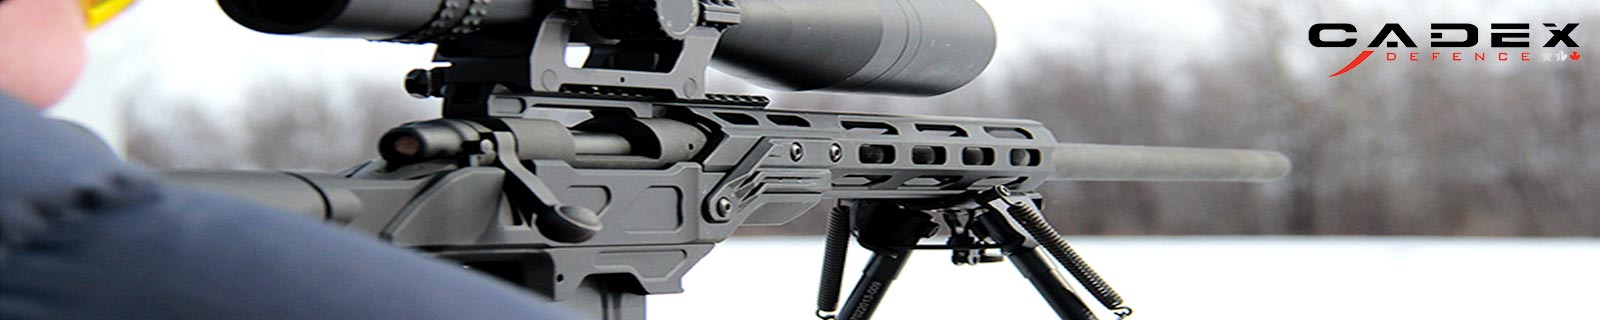 Shop for Cadex Rifles, Chassis and More at TexasStarArsenal.com